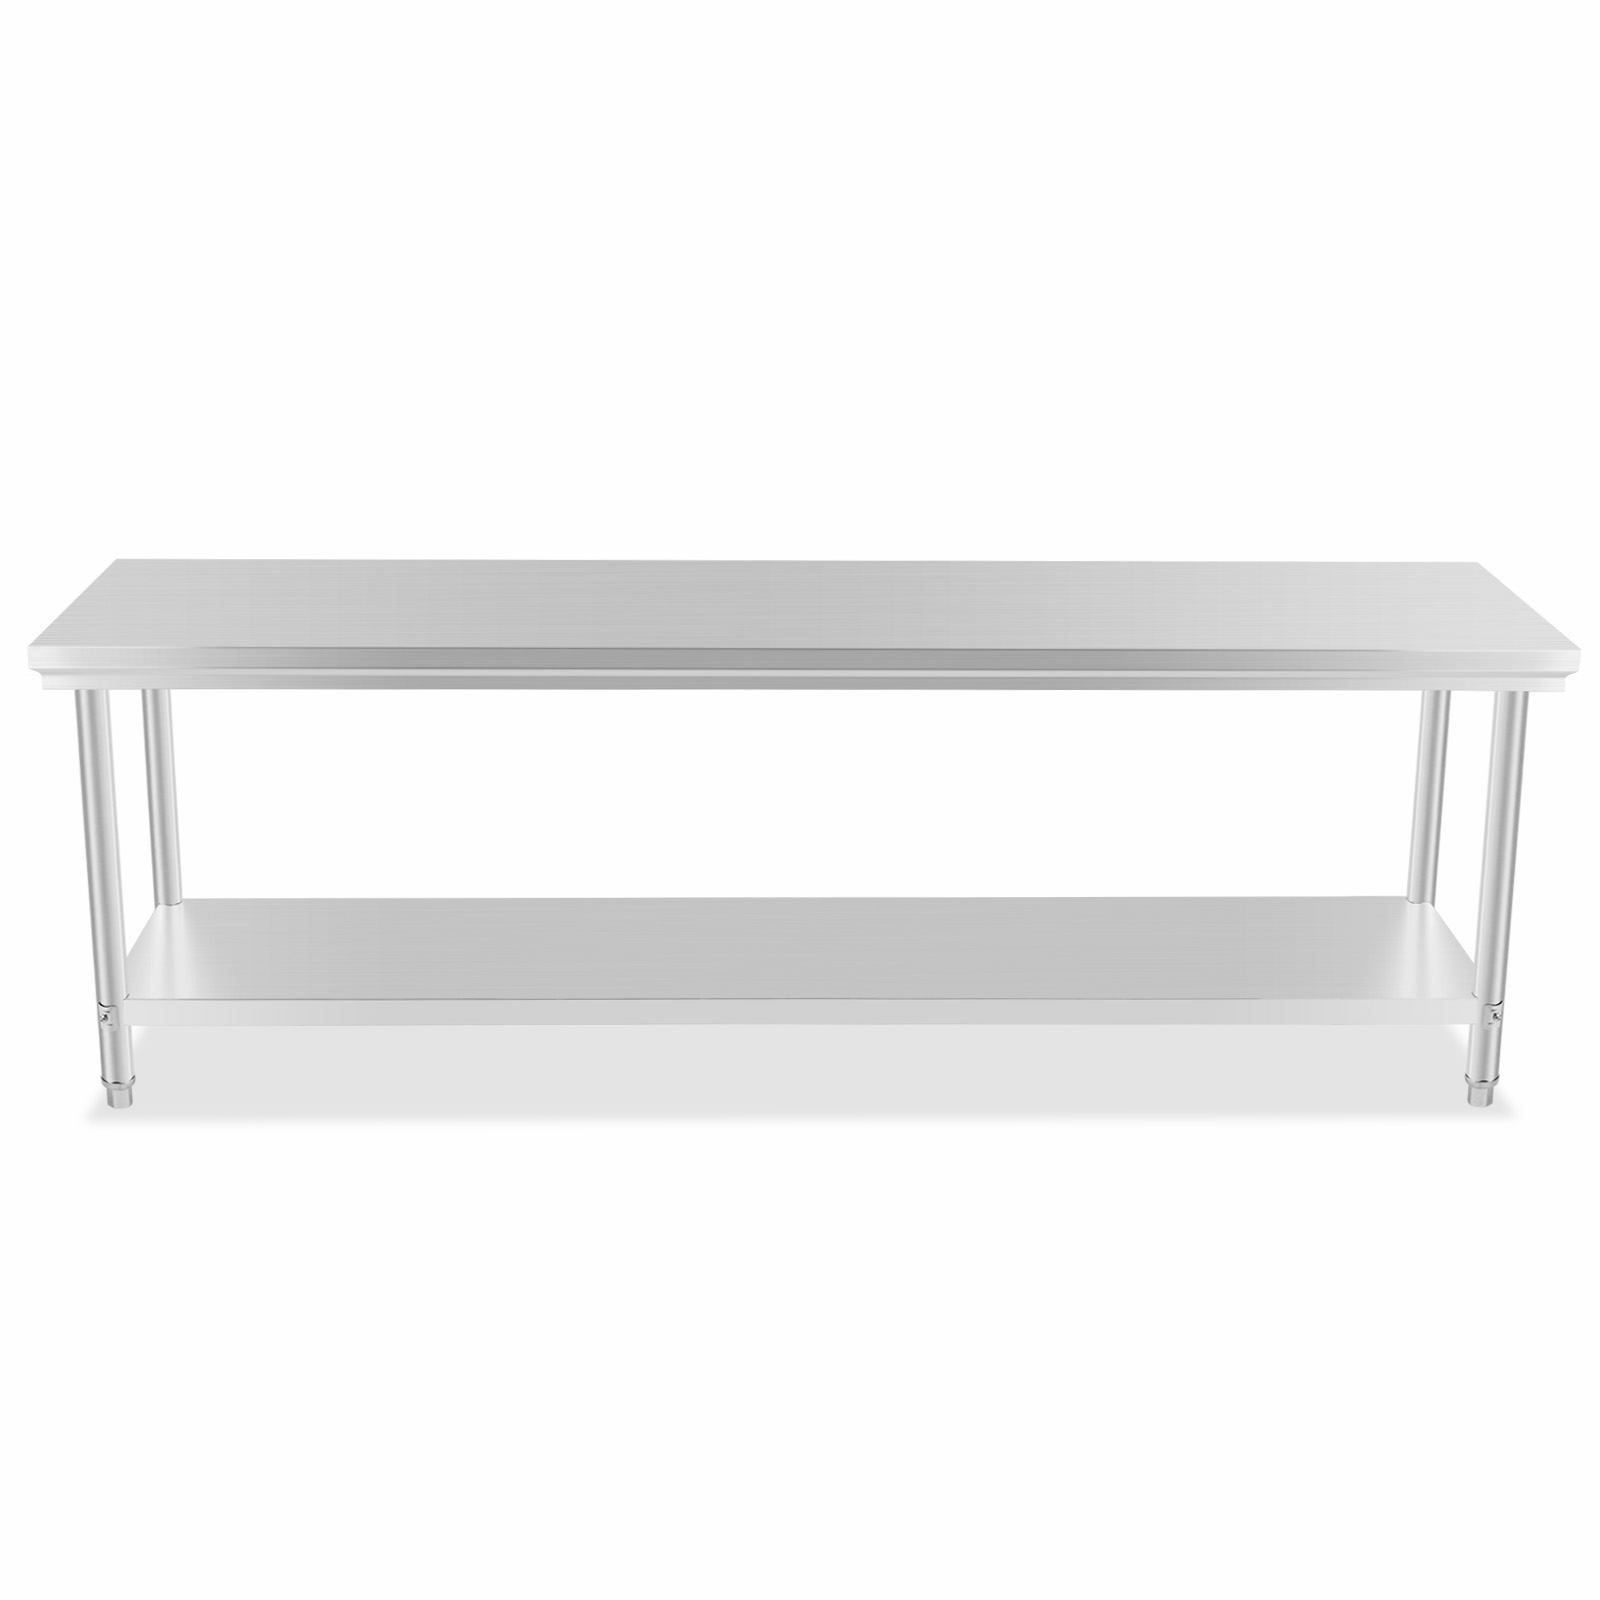 Commercial Stainless Steel Work Bench Food Prep Kitchen